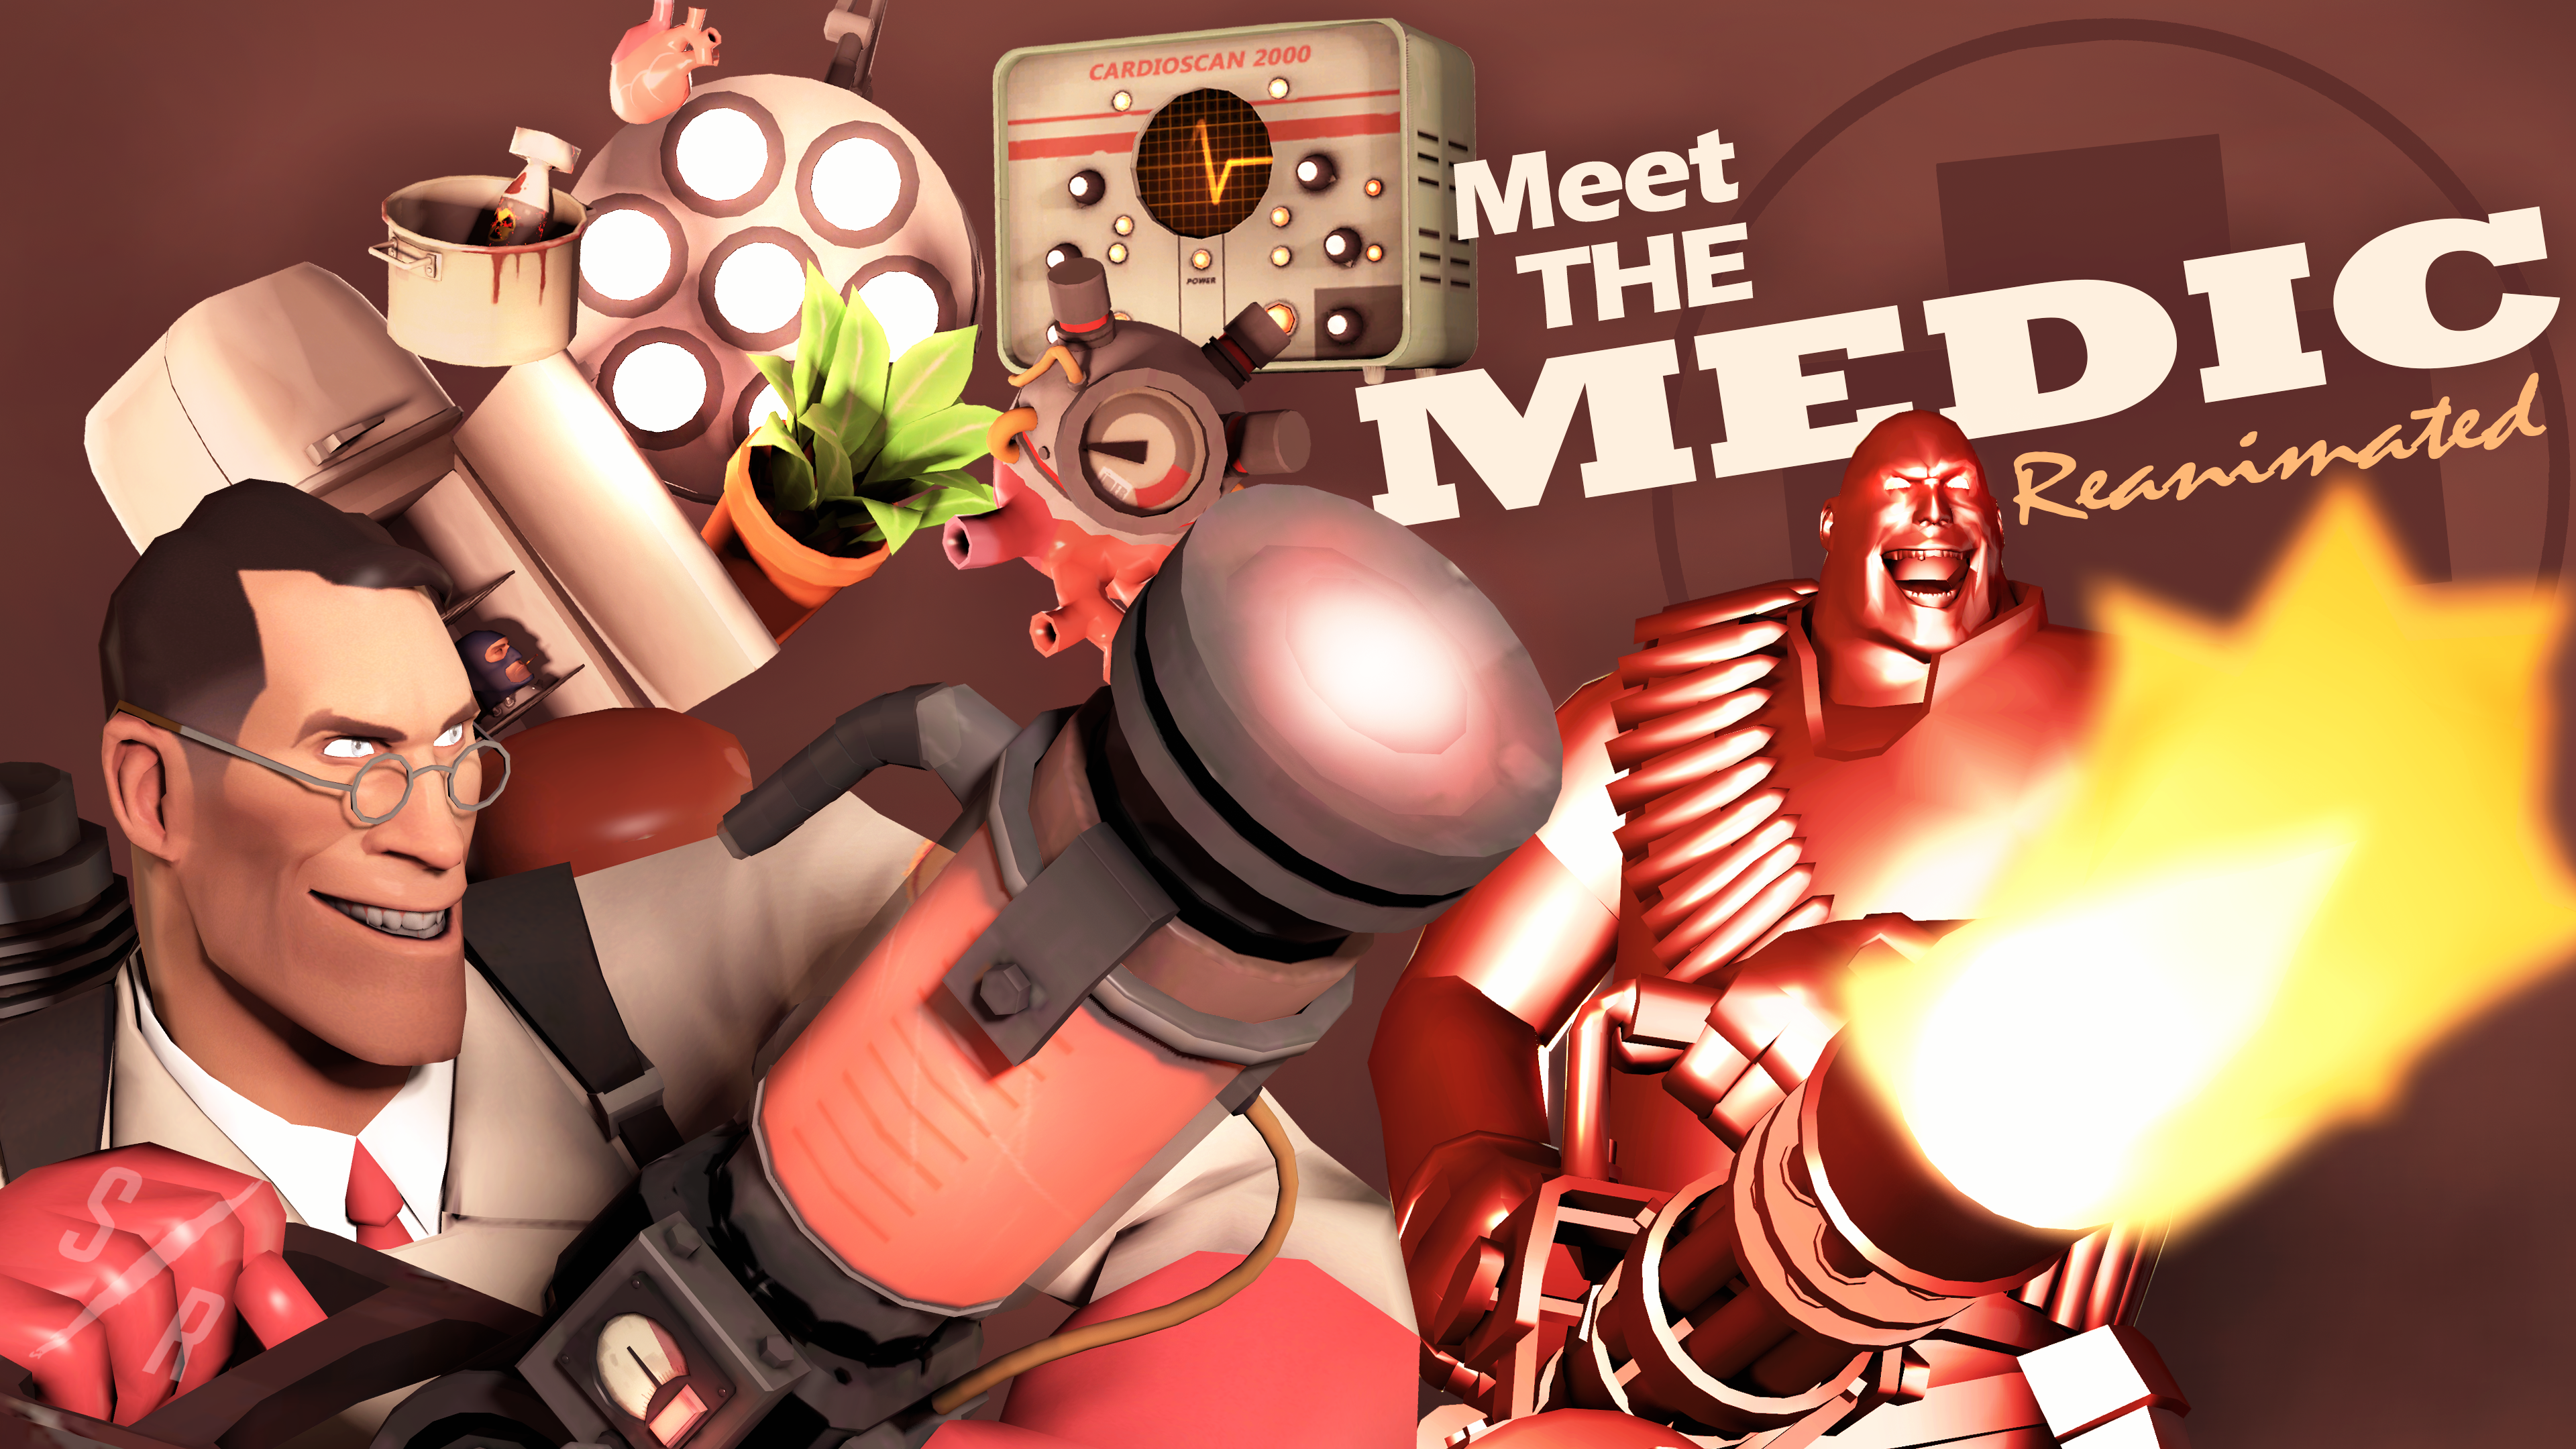 Meet The Medic Reanimated